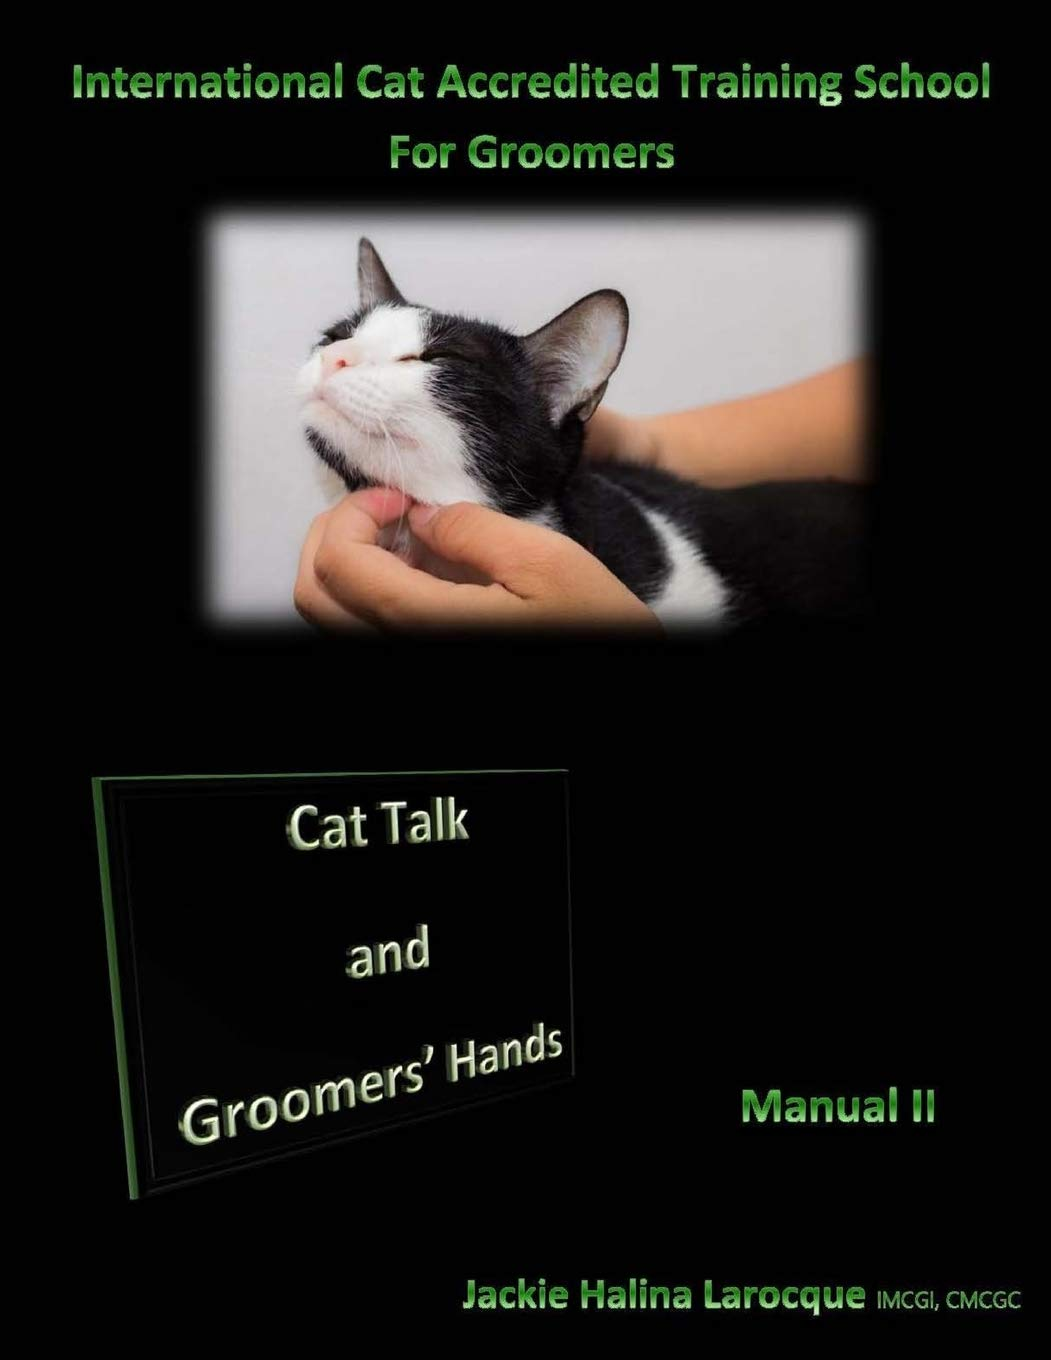 Cat Talk and Groomers' Hands: Feline Body Language and Handling Skills (Cat grooming) (Volume 2) by CreateSpace Independent Publishing Platform